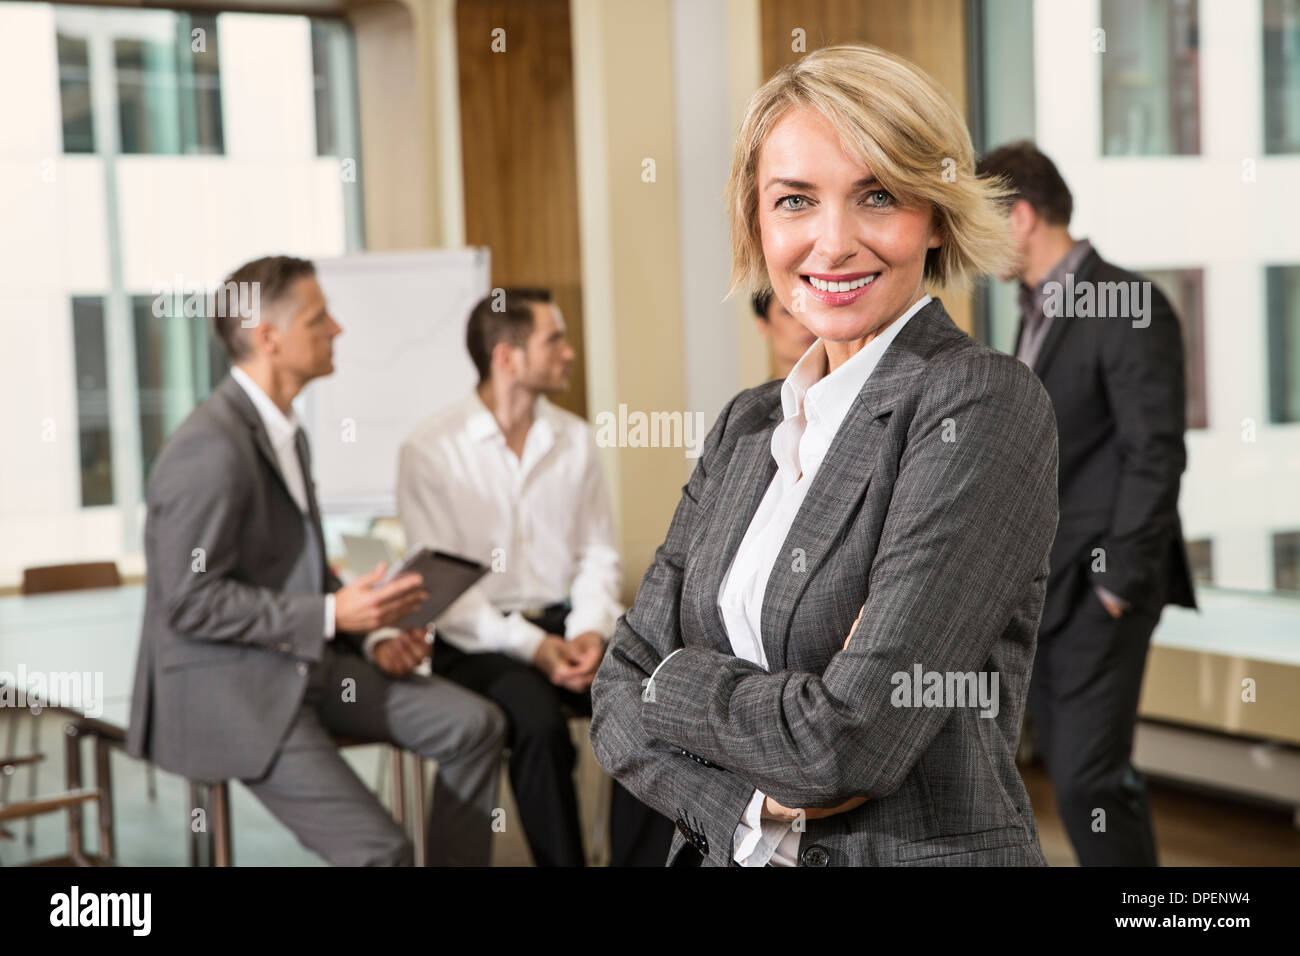 Businesswoman standing in front of collègues Photo Stock